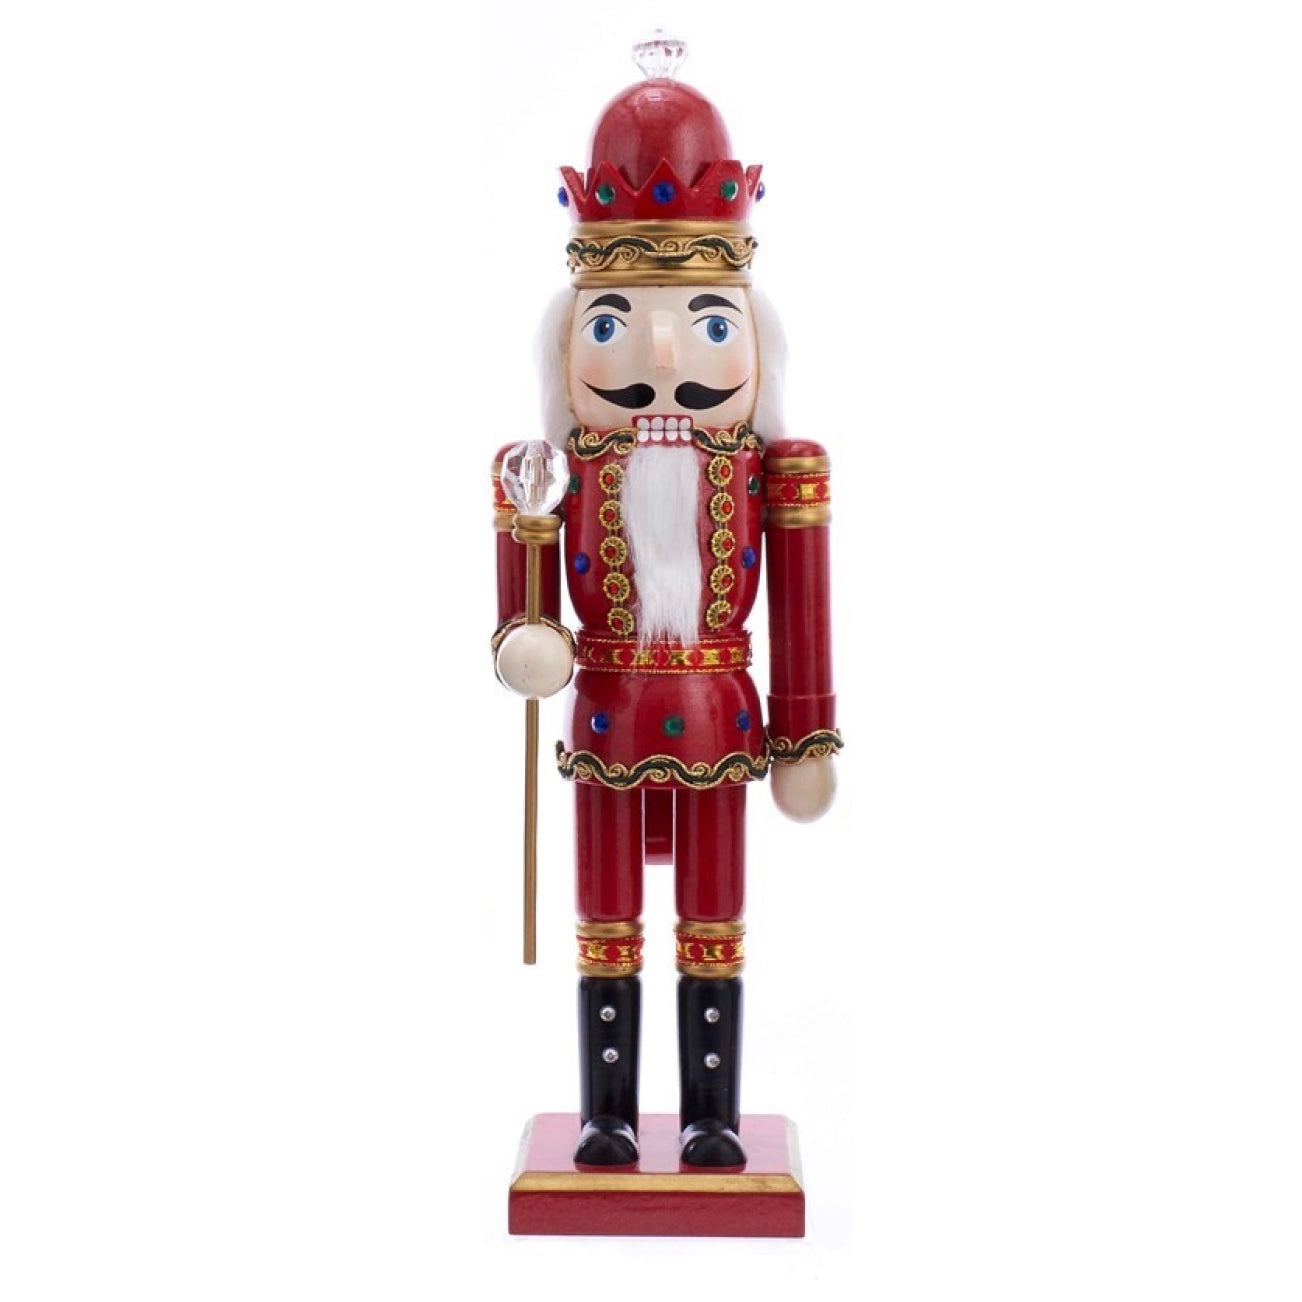 Wooden King Nutcracker - Red | Putti Christmas Decorations